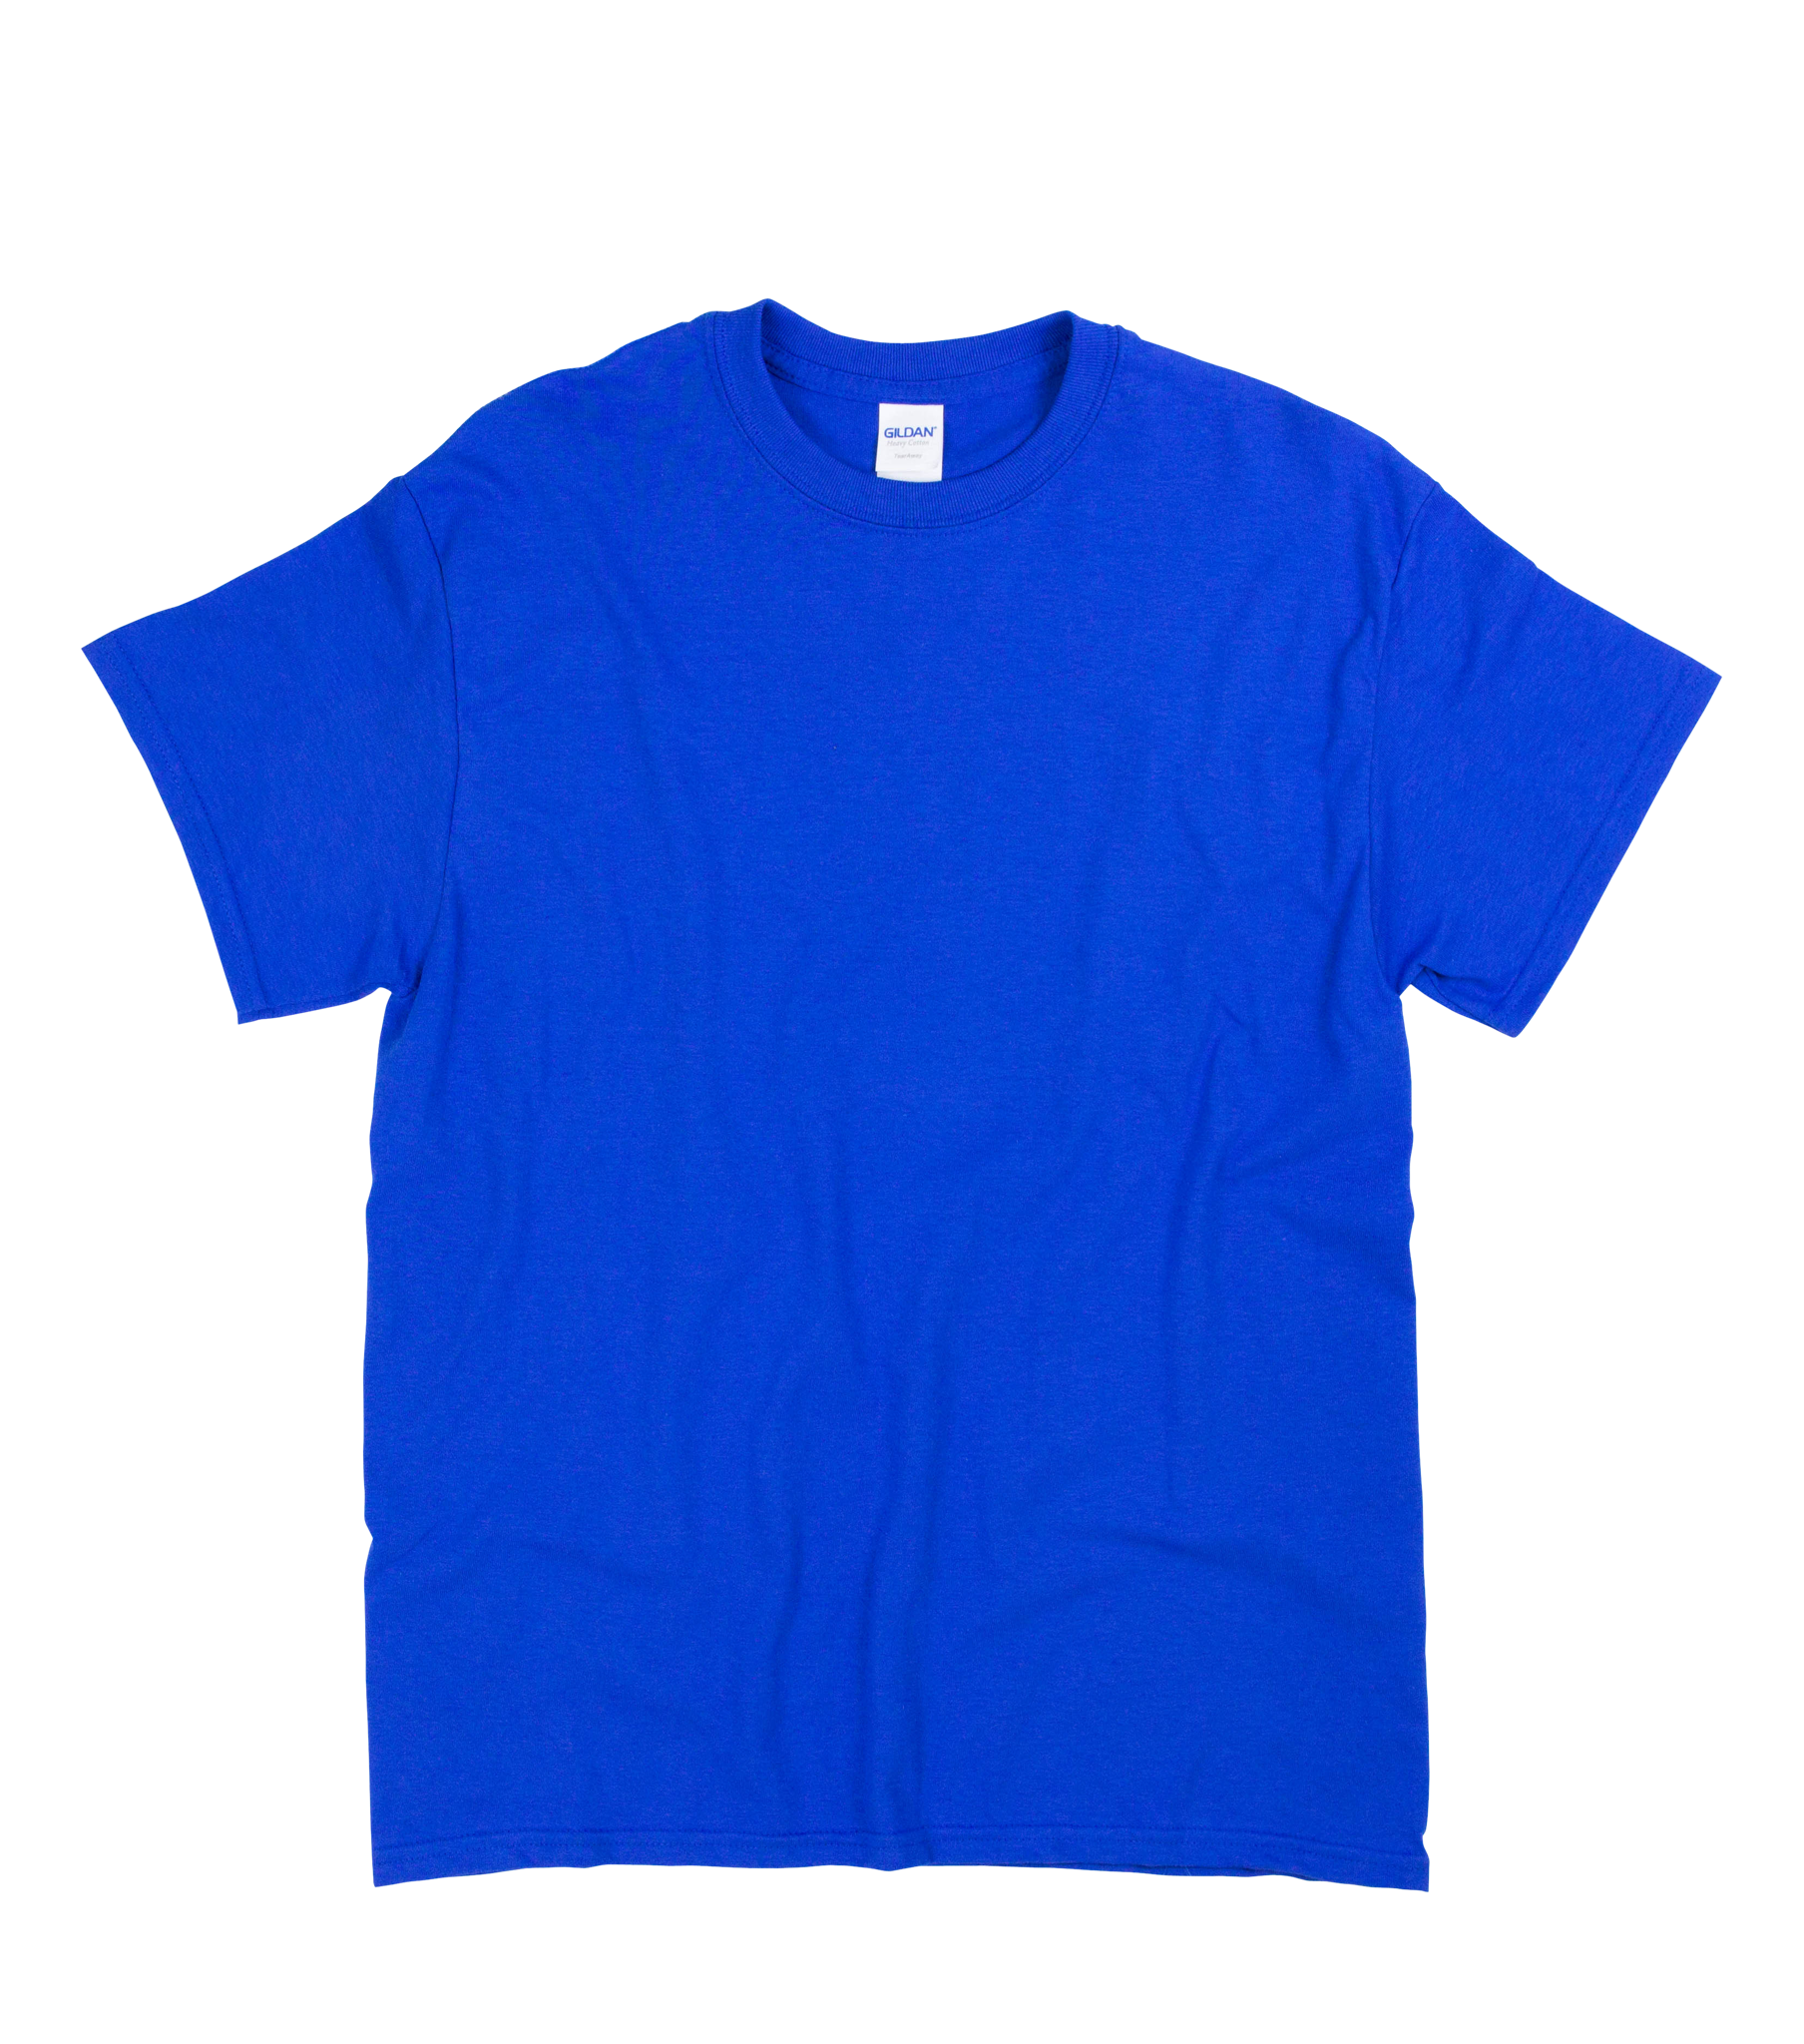 e9c04ff89 Custom Screen Printed Gildan T-Shirts (Low Price with Great Value ...